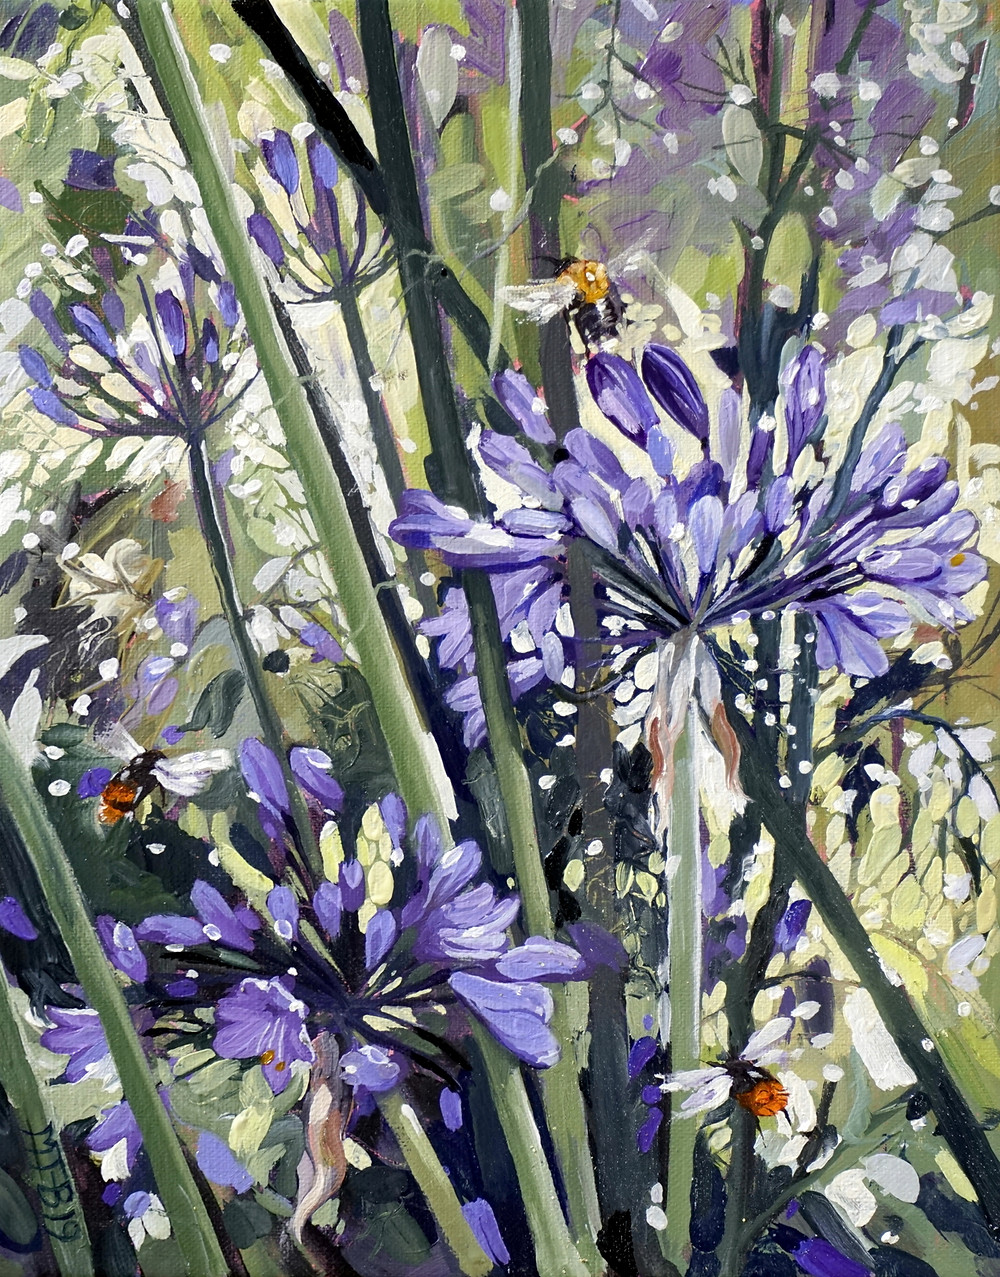 Agapanthus, bumble bees sunshine and rain, oil on linen